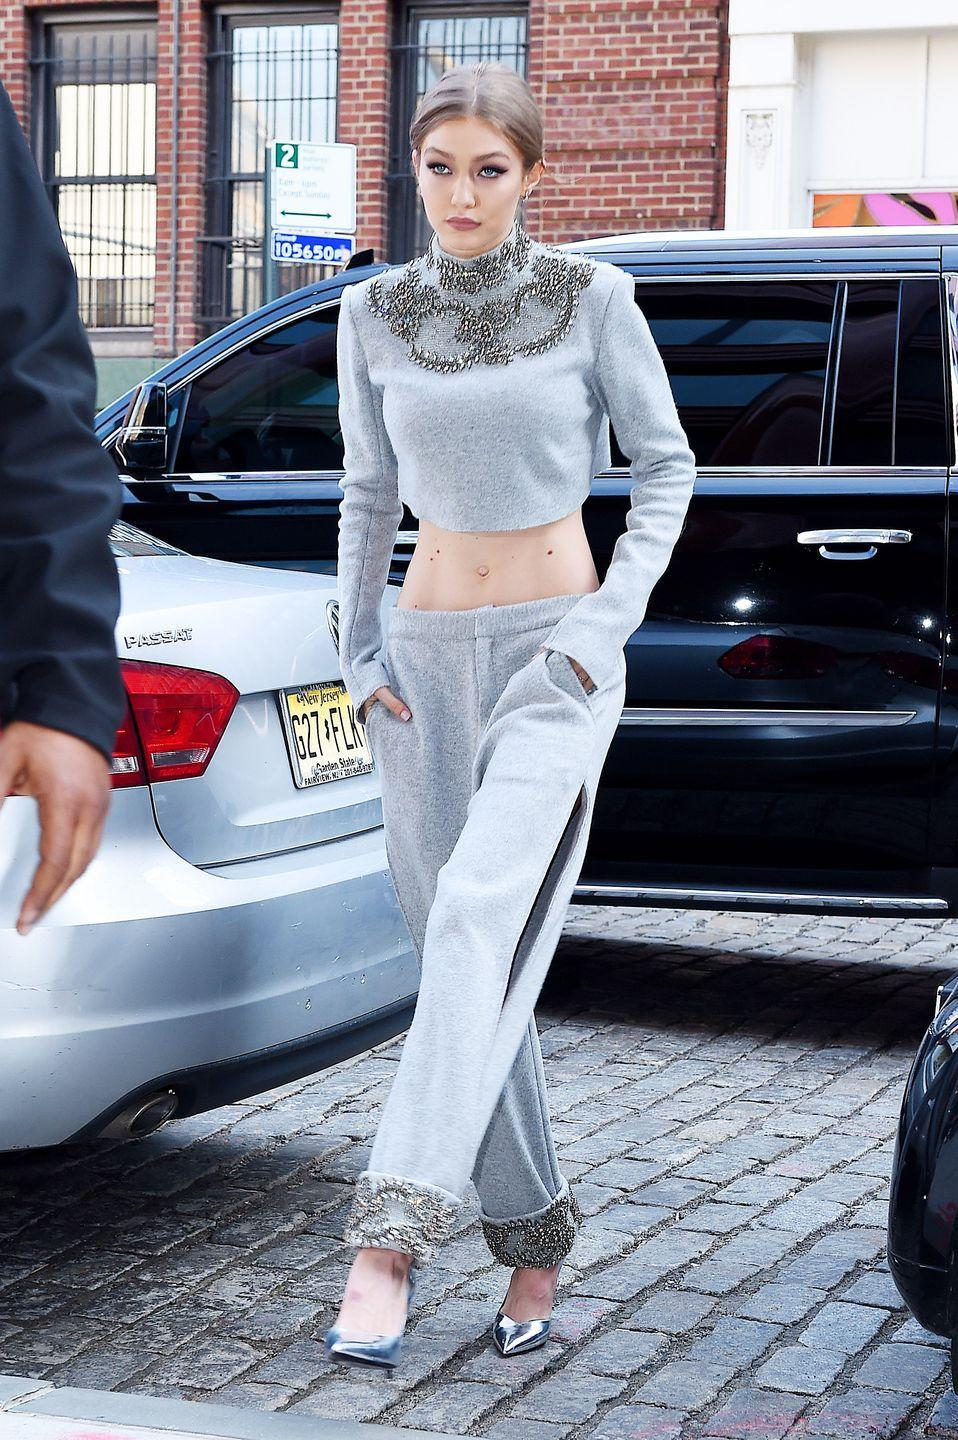 """<p>There are three things all items in Gigi's closet <em>must </em>have: massive thigh slits, a subtle anthleisure vibe, and some kind of eye-grabbing detail. This super fancy sweatsuit checks off all three. But that level of slayage doesn't come cheap – the Sally LaPointe set costs <a href=""""http://www.elle.com/fashion/celebrity-style/news/a44531/gigi-hadid-sally-lapointe-sweats/?src=socialflowTW"""" rel=""""nofollow noopener"""" target=""""_blank"""" data-ylk=""""slk:$4,100"""" class=""""link rapid-noclick-resp"""">$4,100</a>. 😳</p>"""